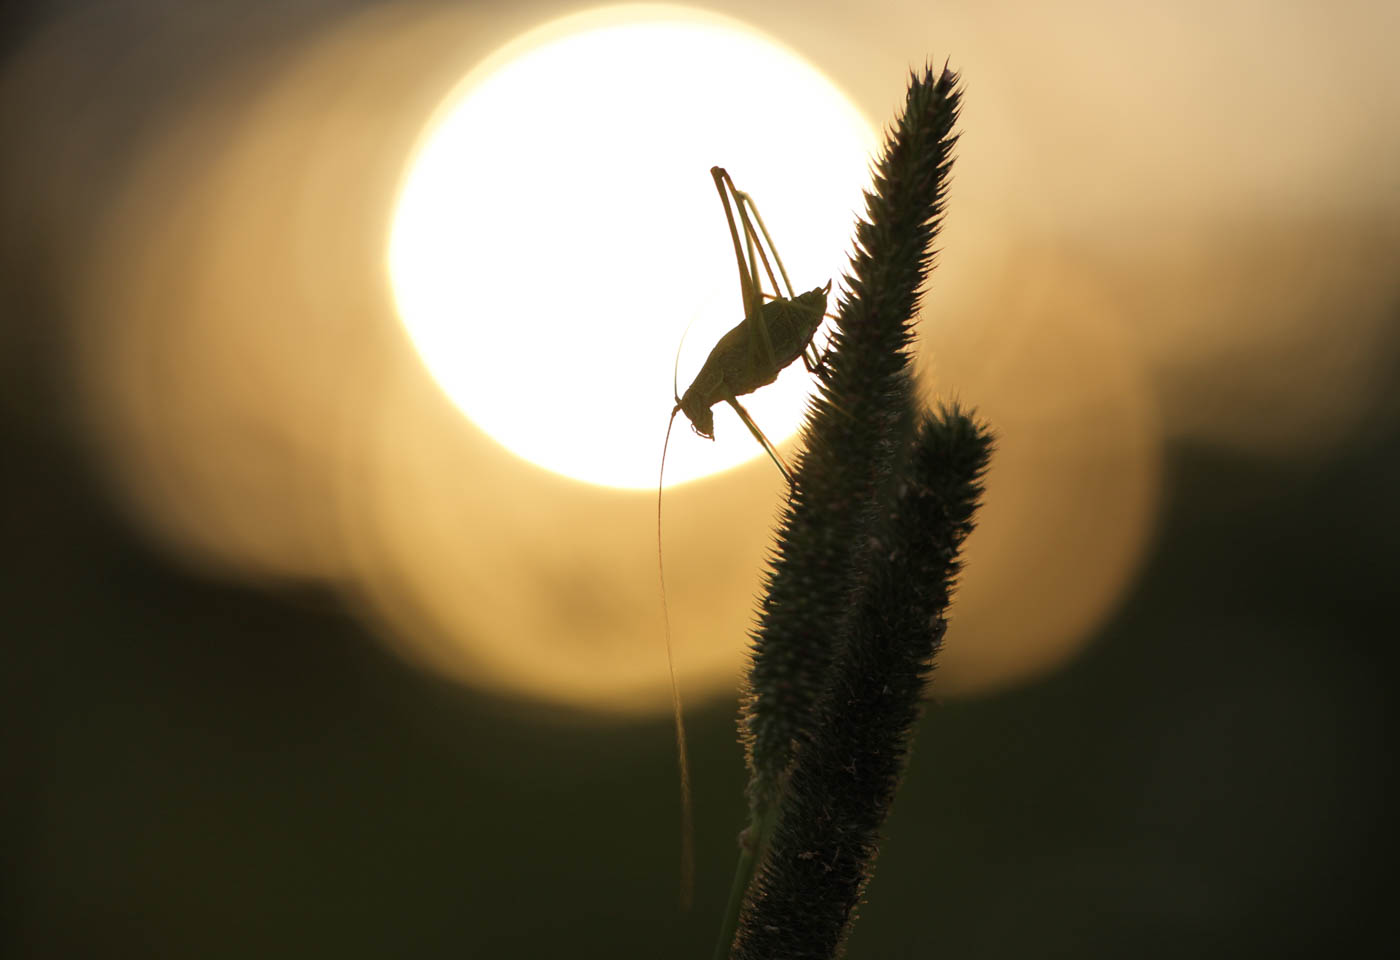 Cricket on a plant at sunset